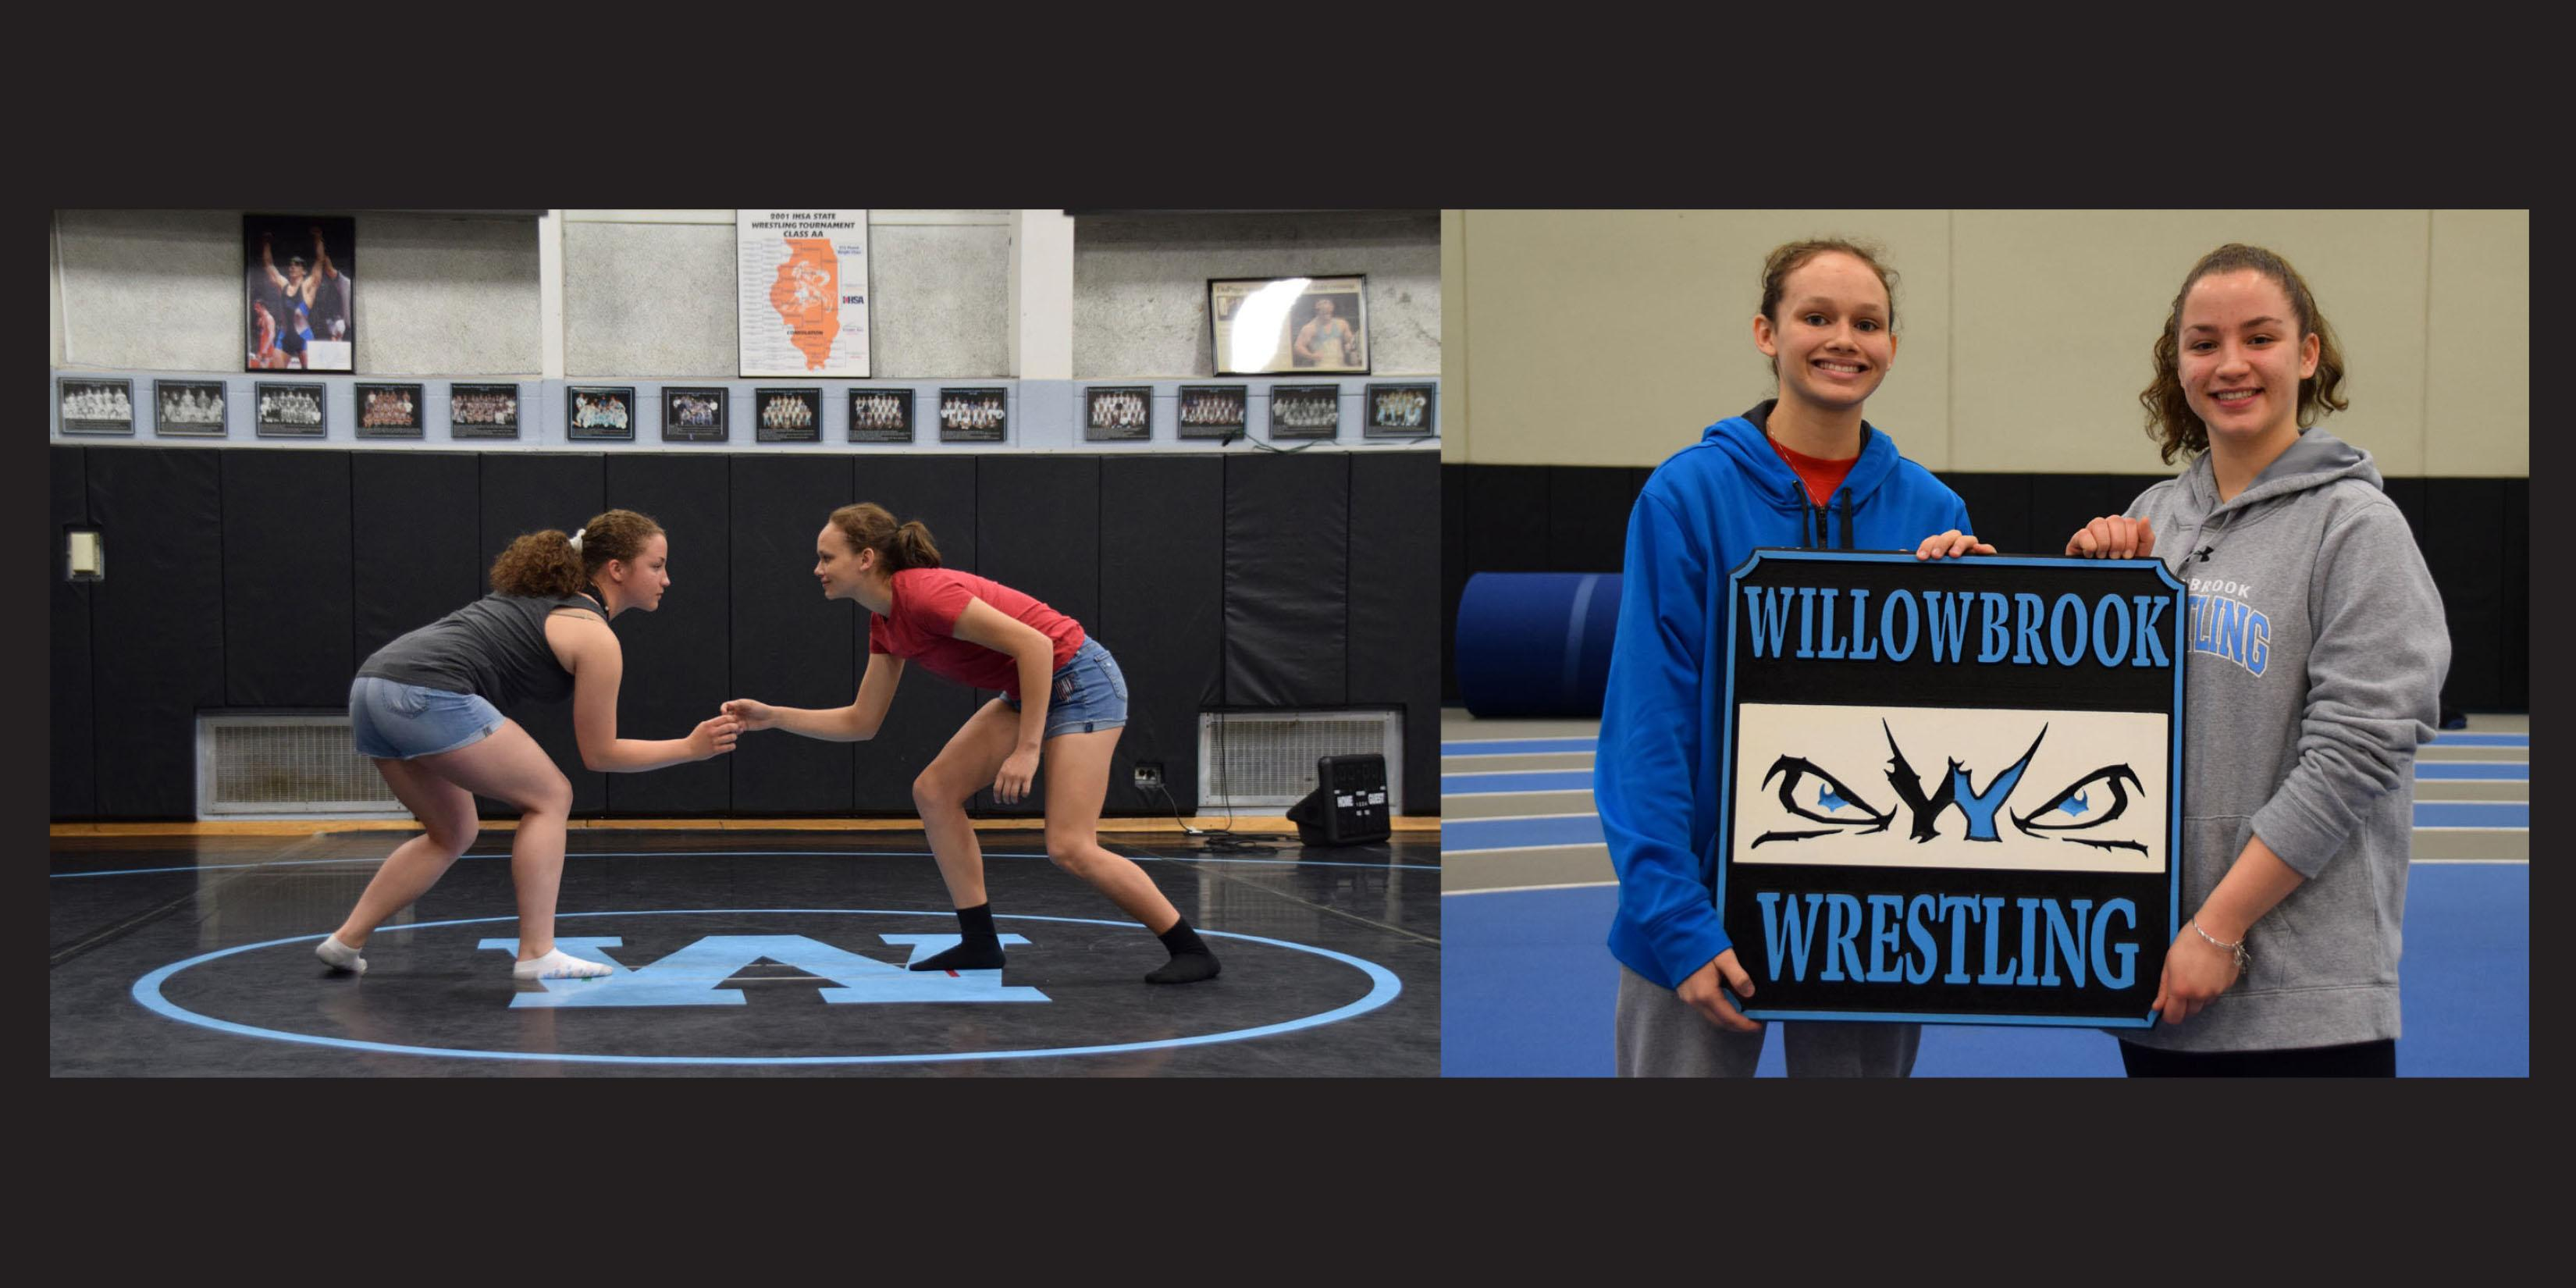 Two Willowbrook freshmen girls make Willowbrook Wrestling history